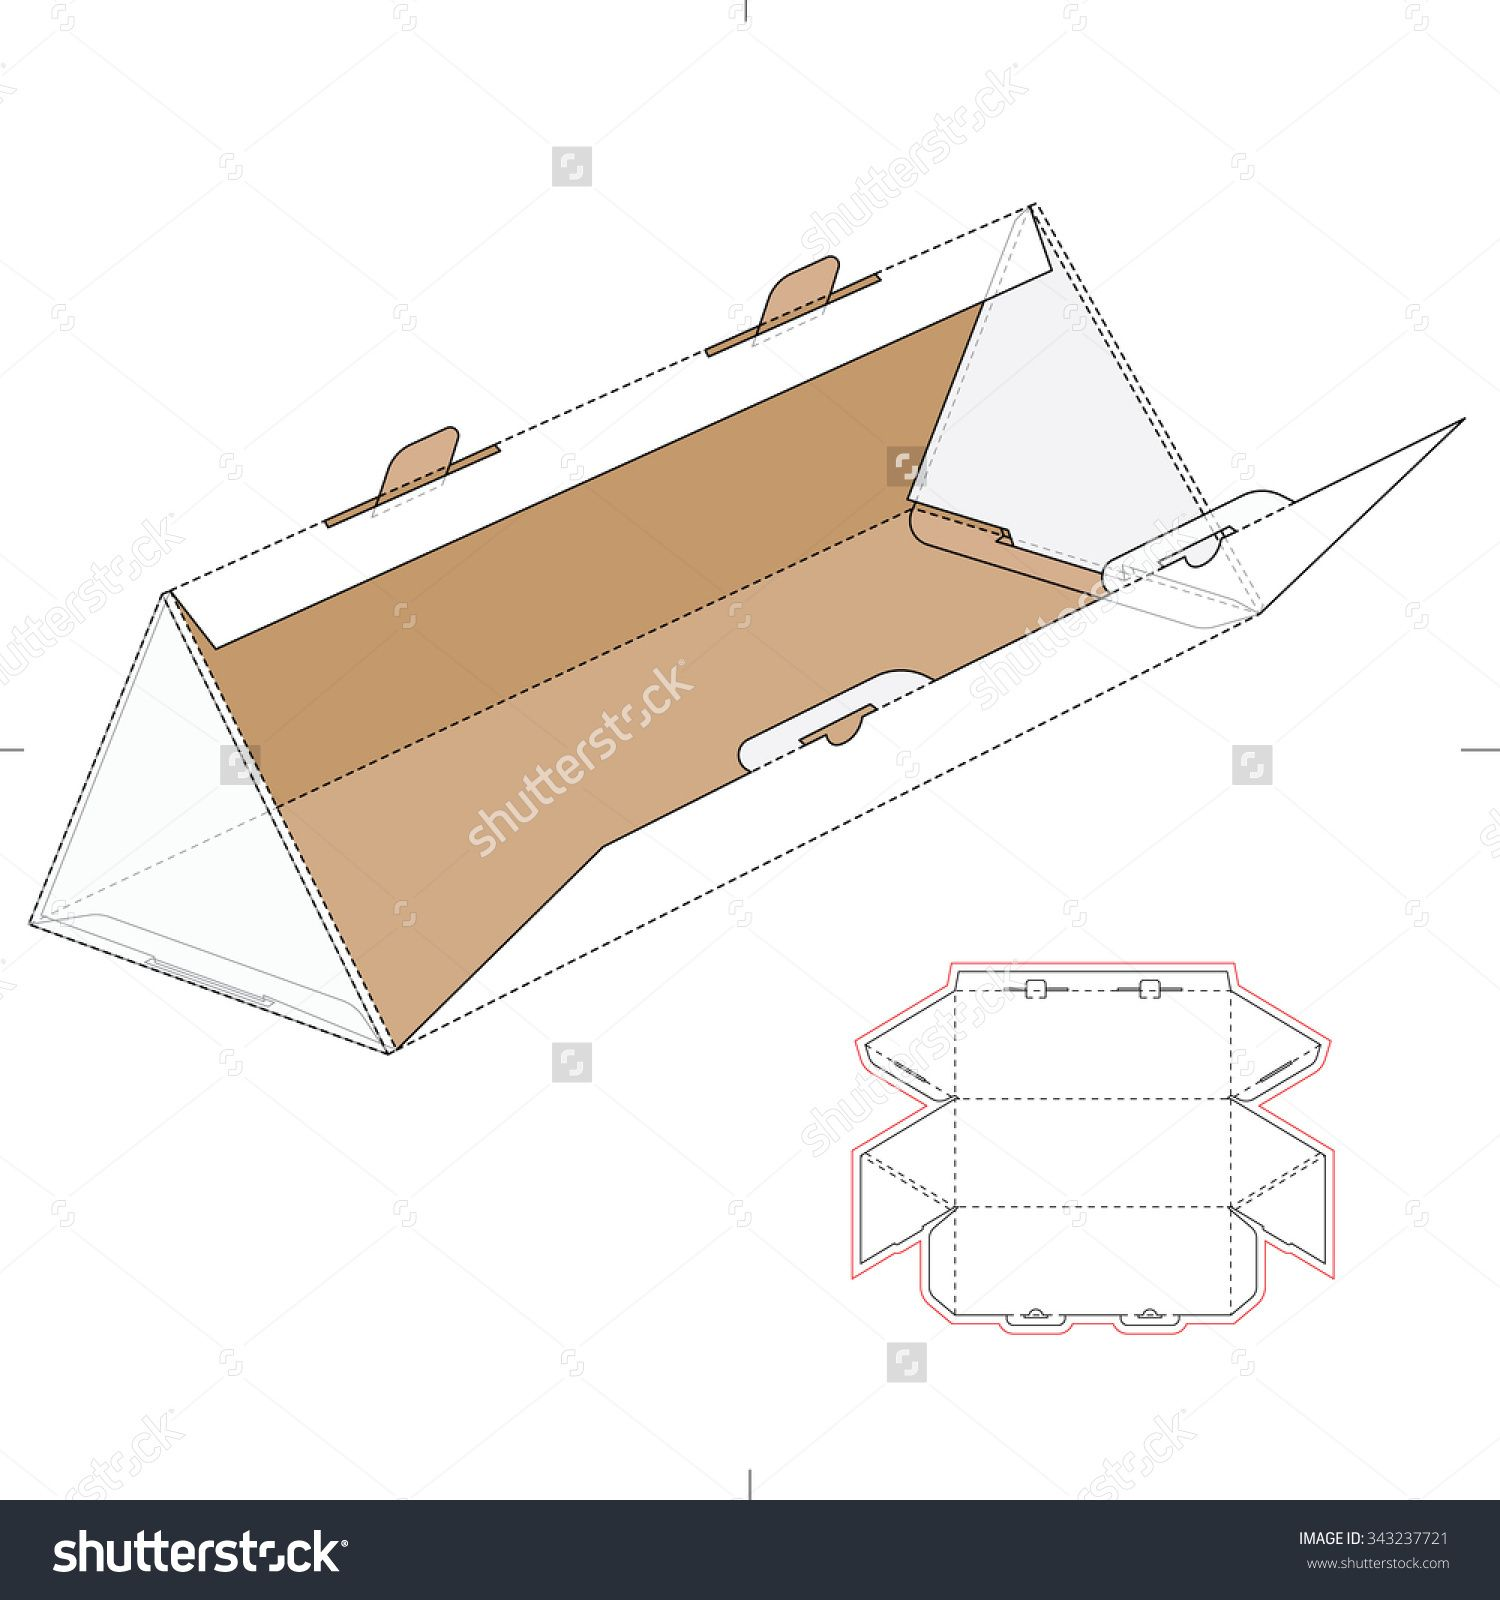 Triangular box with die cut template and layout stock vector illustration 343237721 for Box template vector